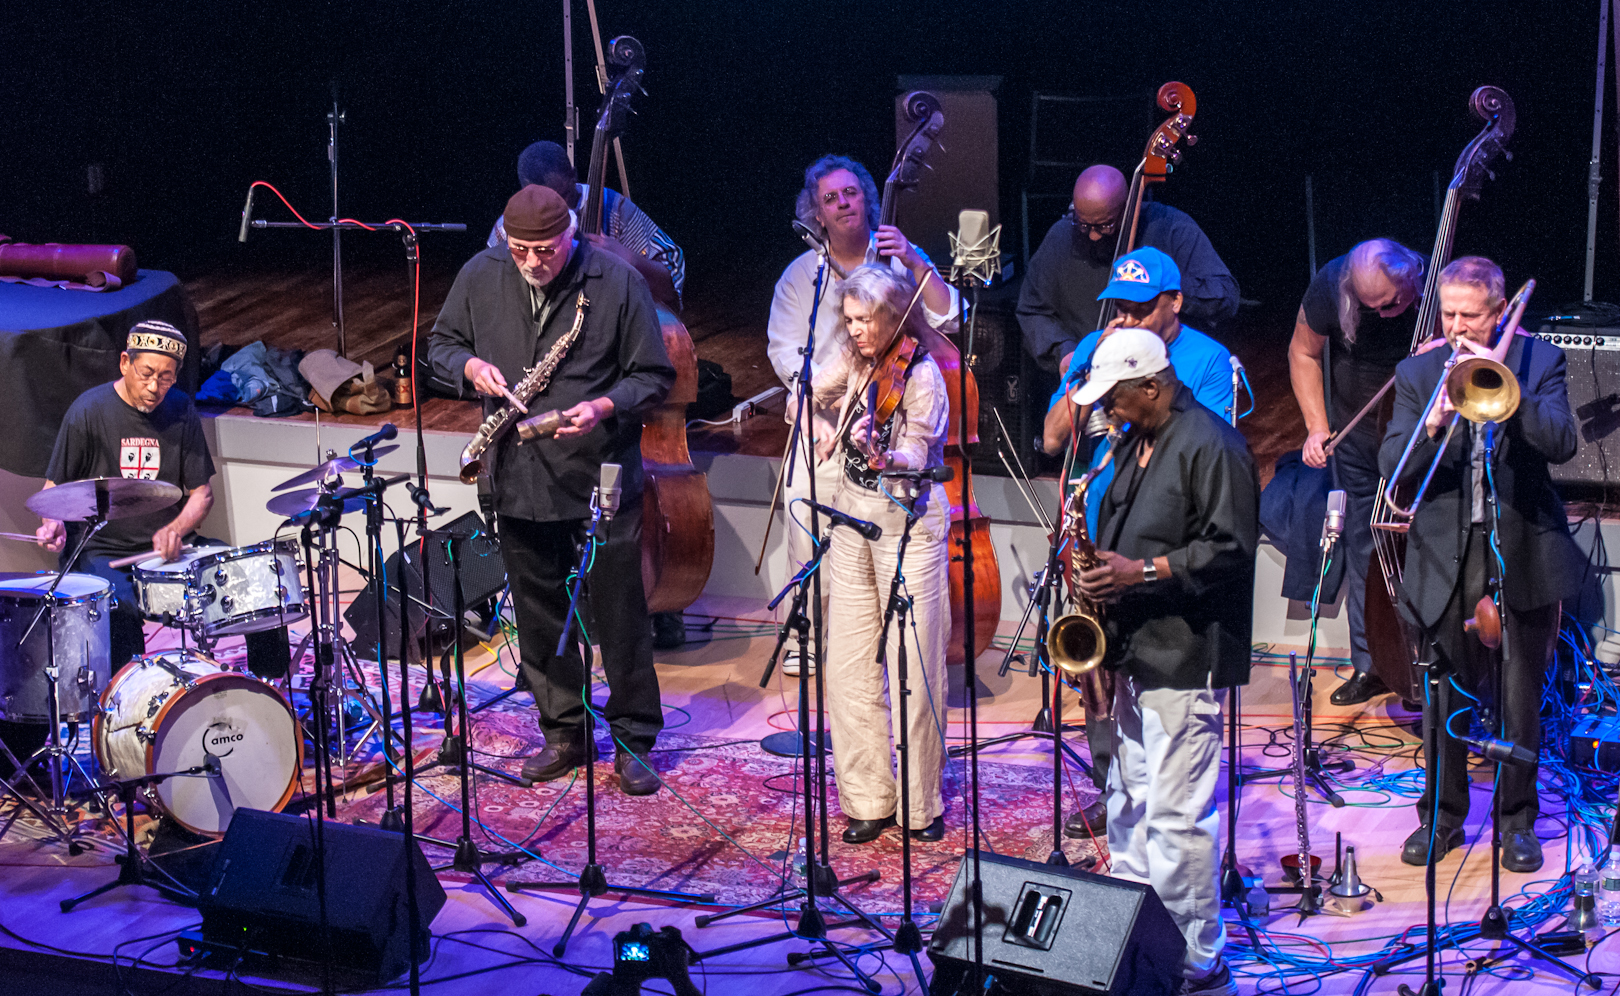 Joe McPhee / Angels, Devils and Haints II at the Vision Festival 2012